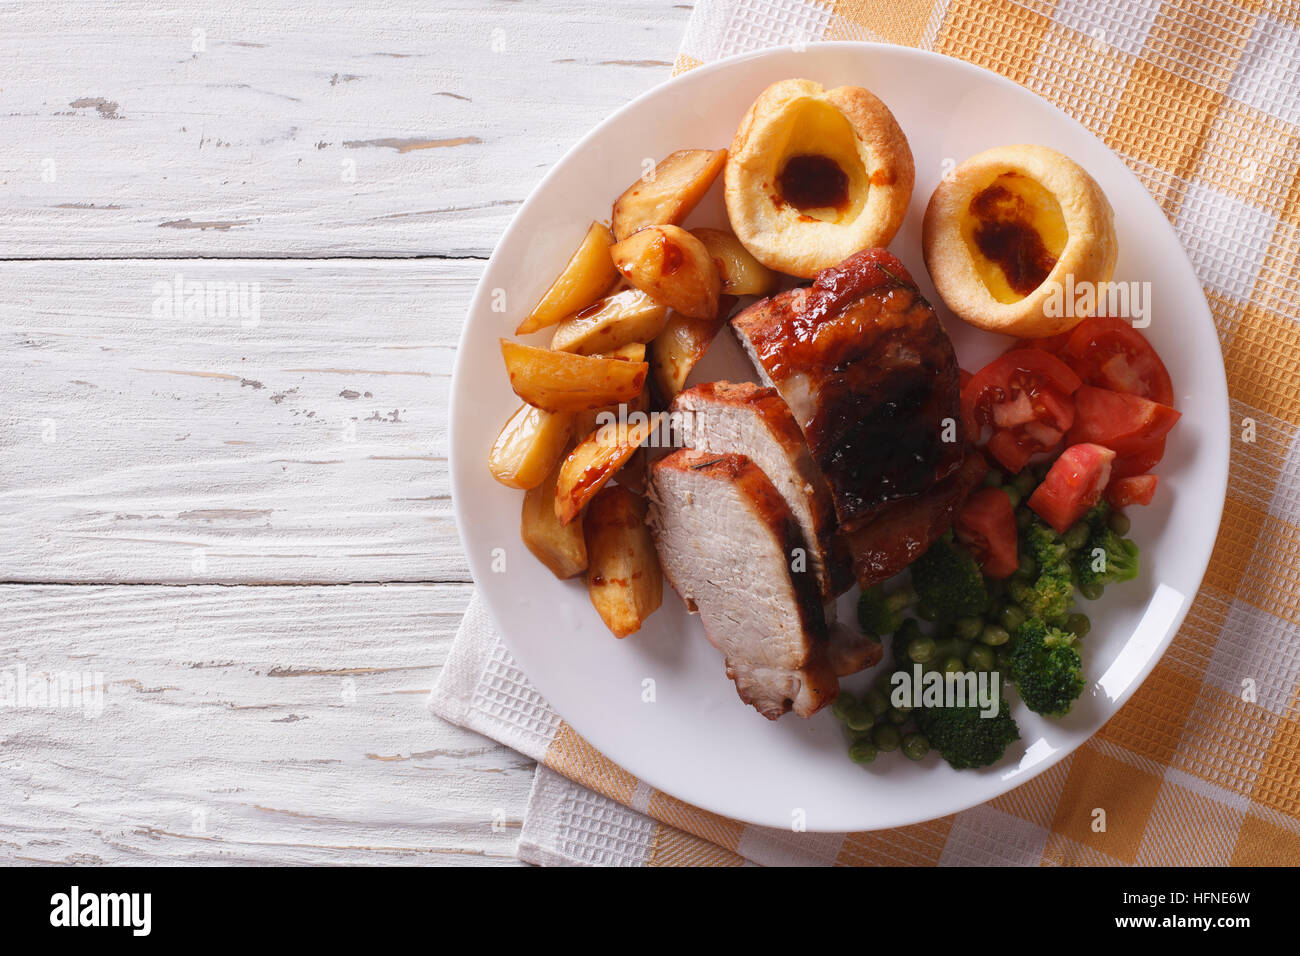 Sunday Roast: pork with potatoes, vegetables and Yorkshire pudding close up on the table. horizontal view from above - Stock Image